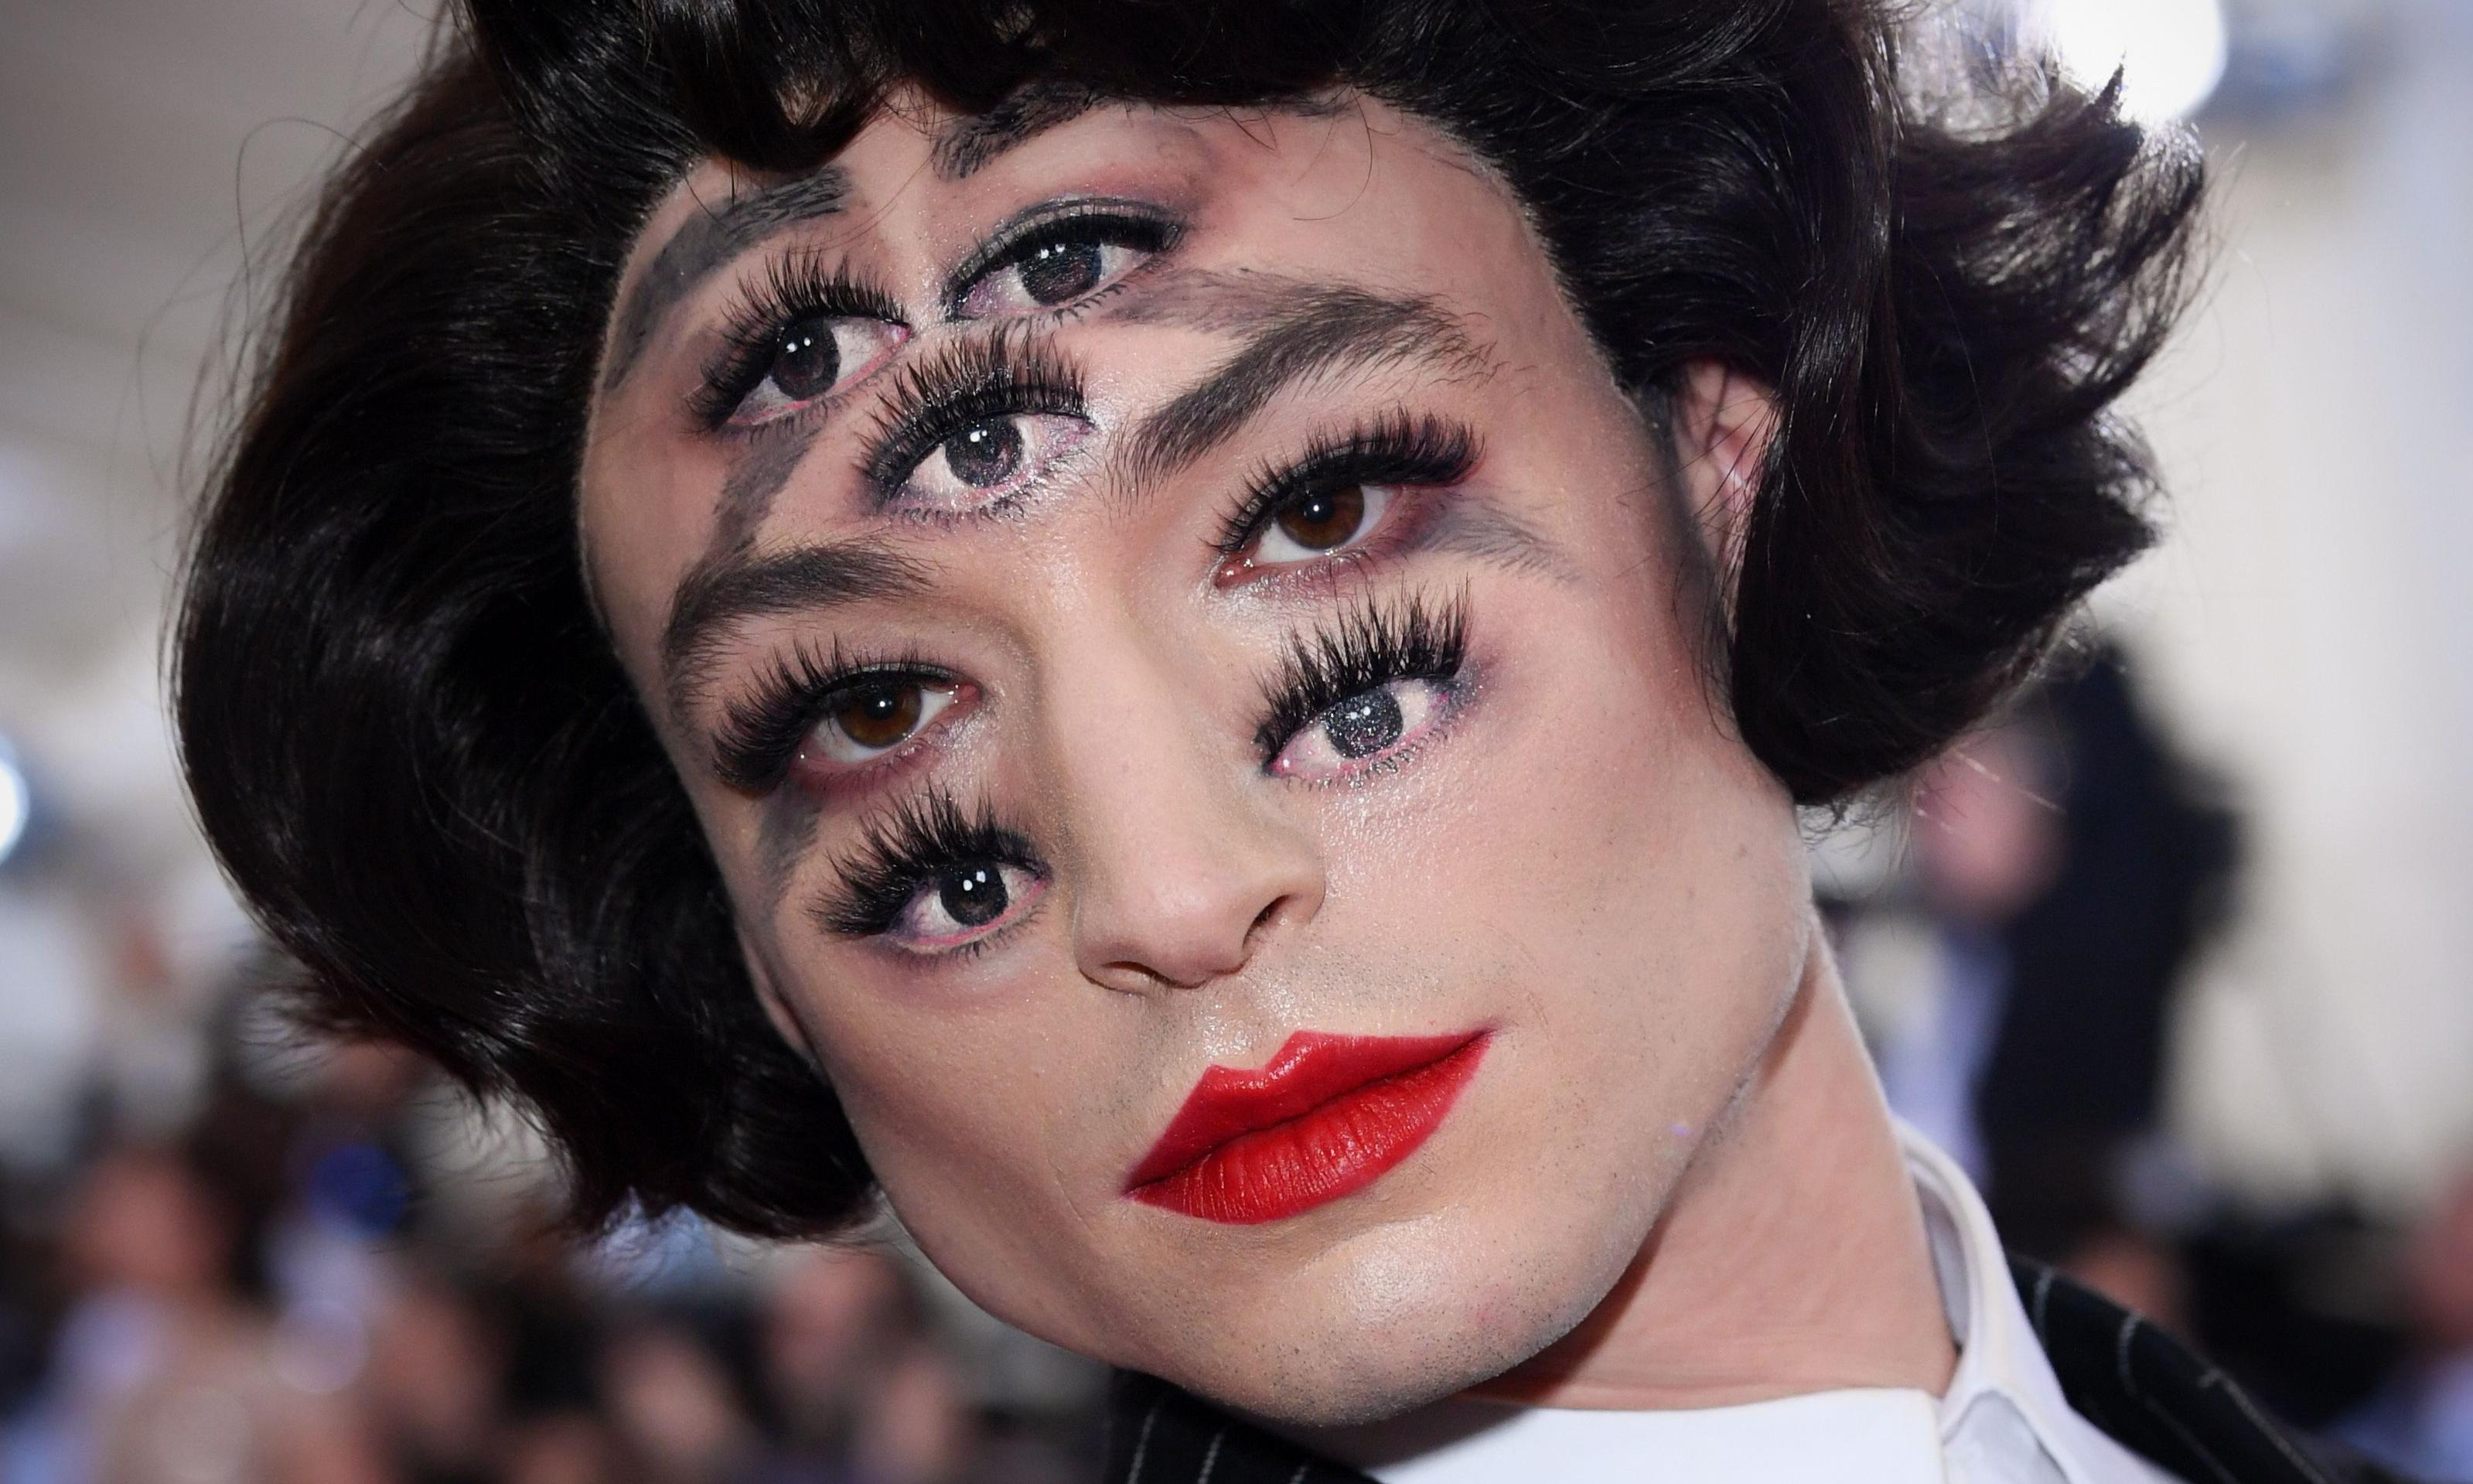 Another pair of eyes: how makeup artist Mimi Choi created Ezra Miller's Met Gala look